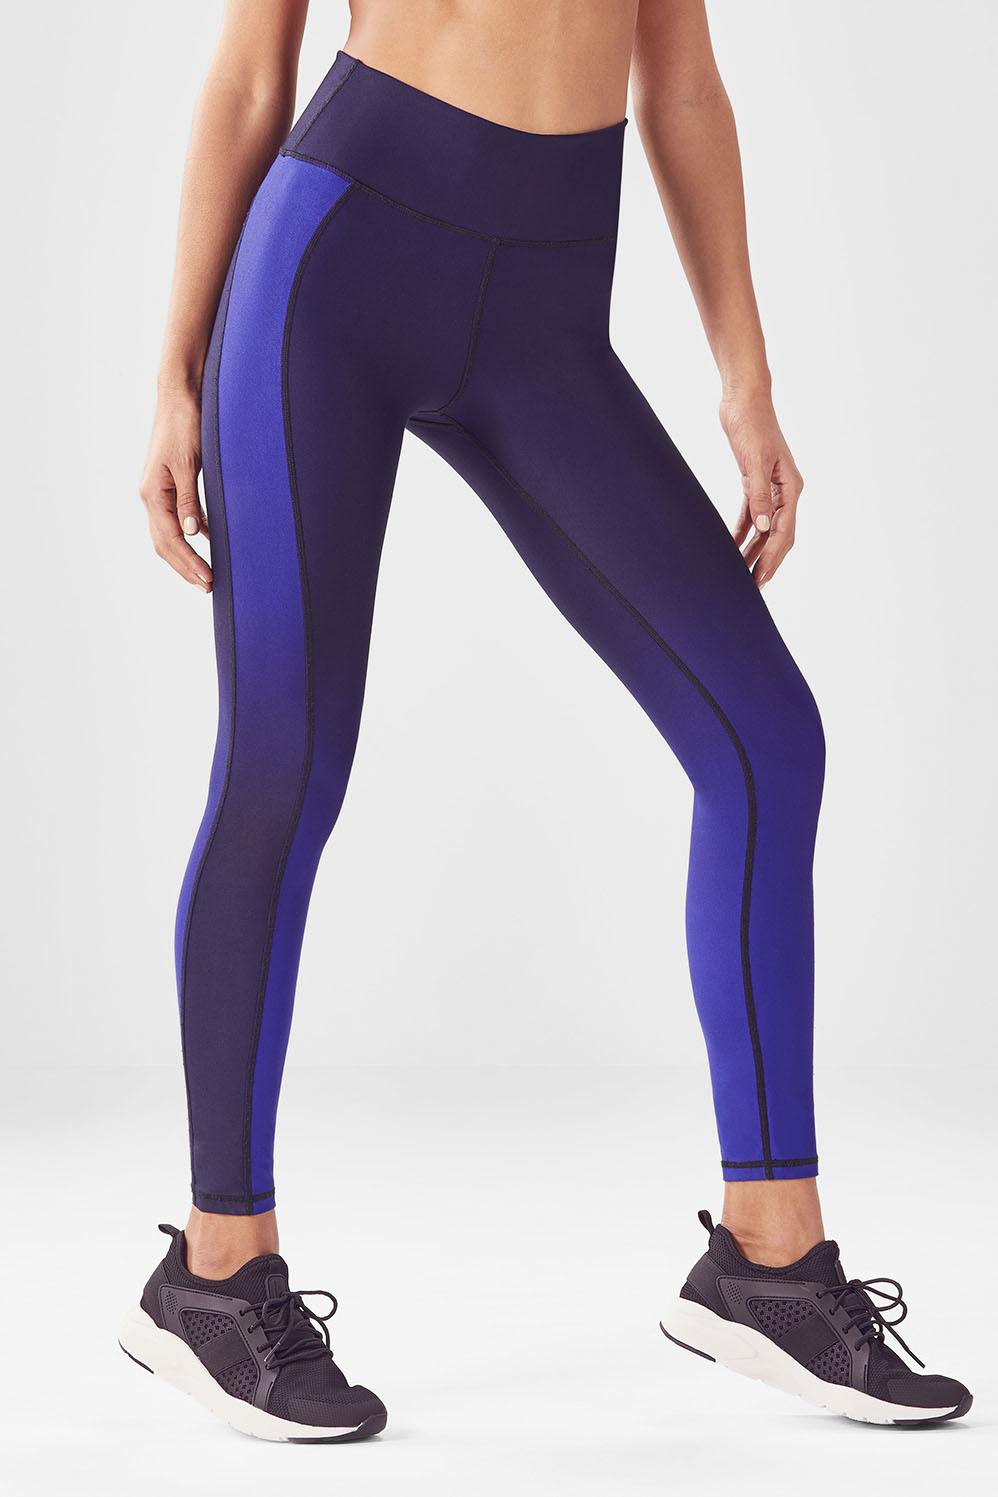 427c635aef High-Waisted Statement PowerHold® Leggings - Black/Raven Ombre